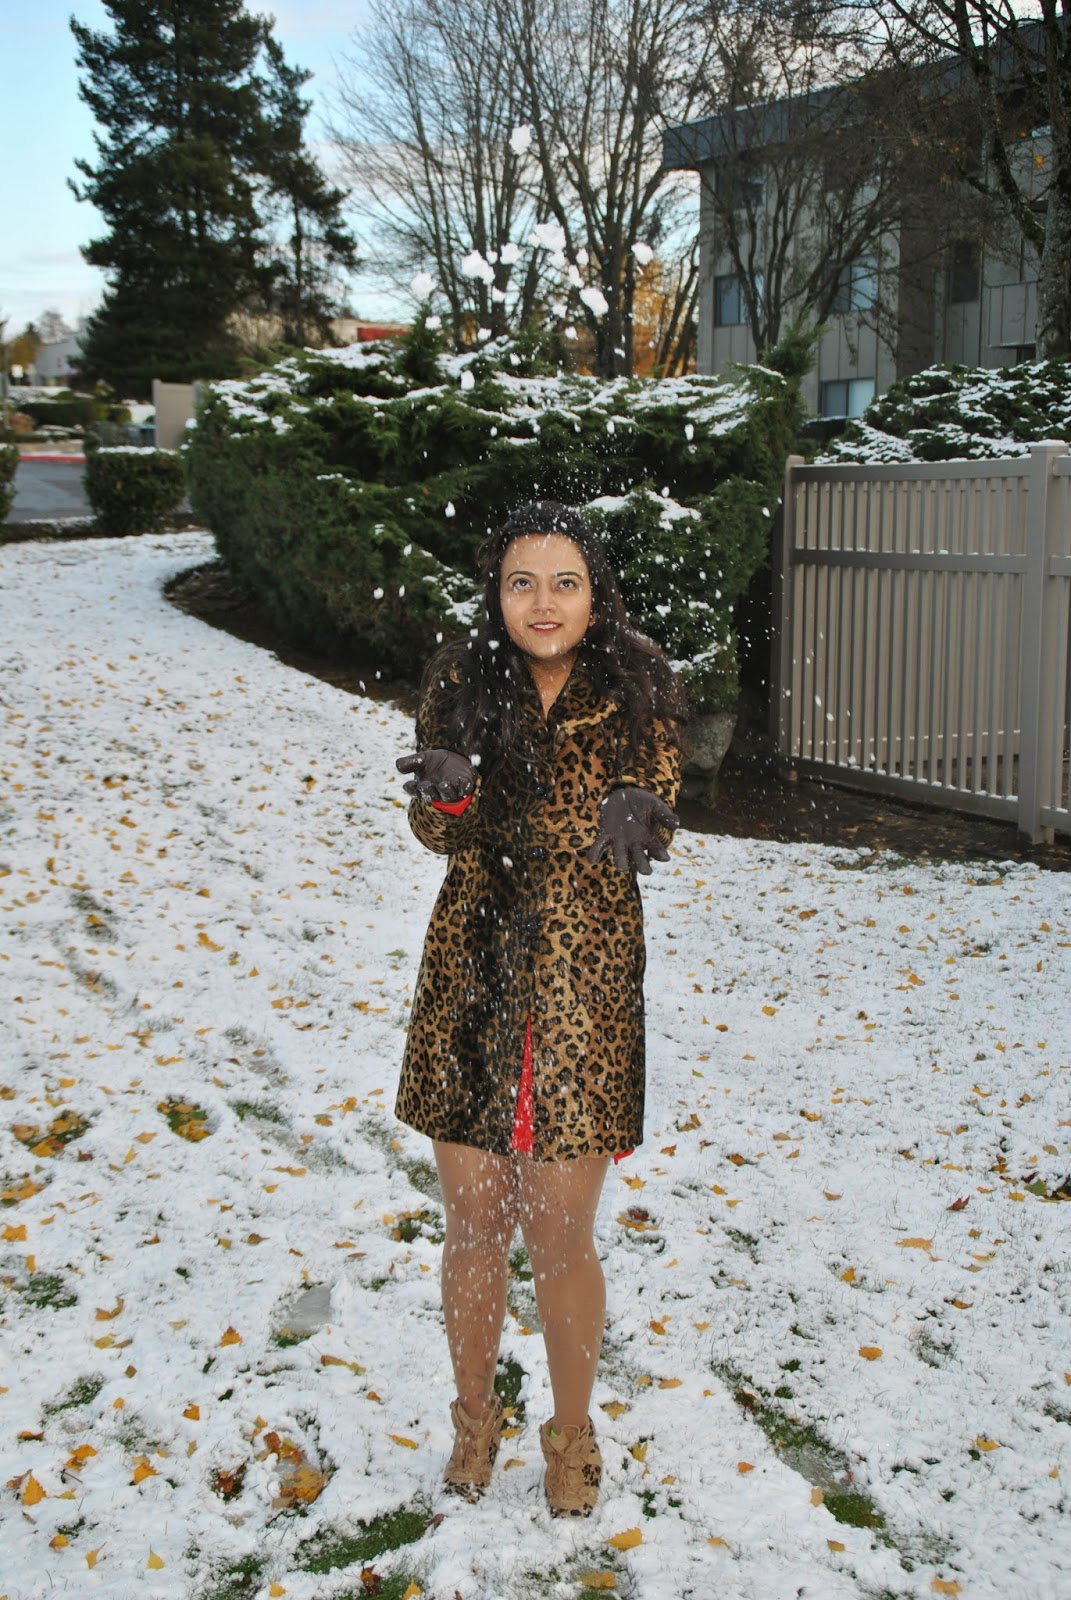 Indian fashion blogger,Leopard printed coats, Designer leopard printed jacket, Fashionable leopard prints, Indian Lady with a leopard printed jacket, Seattle winter fashion, beautiful girl in snow